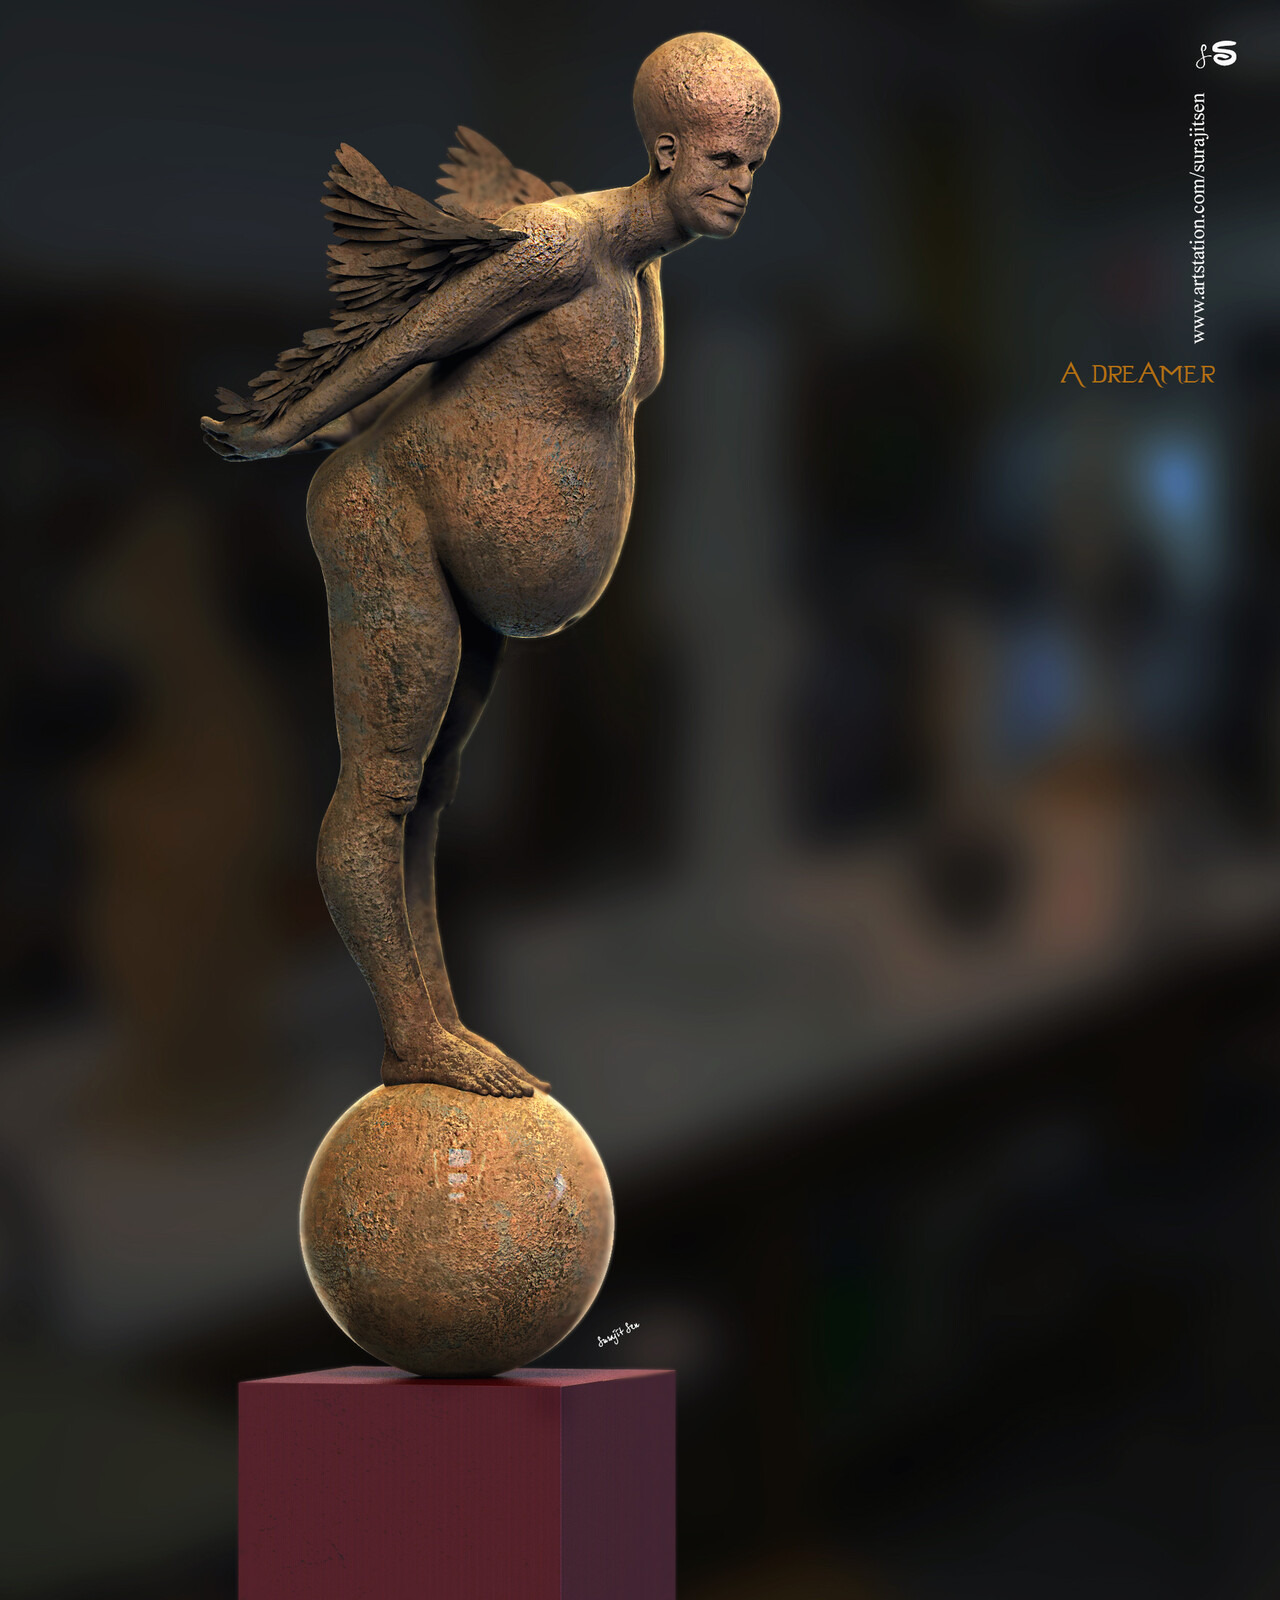 A Dreamer Digital Sculpture. My thoughts.... Background music- #hanszimmermusic